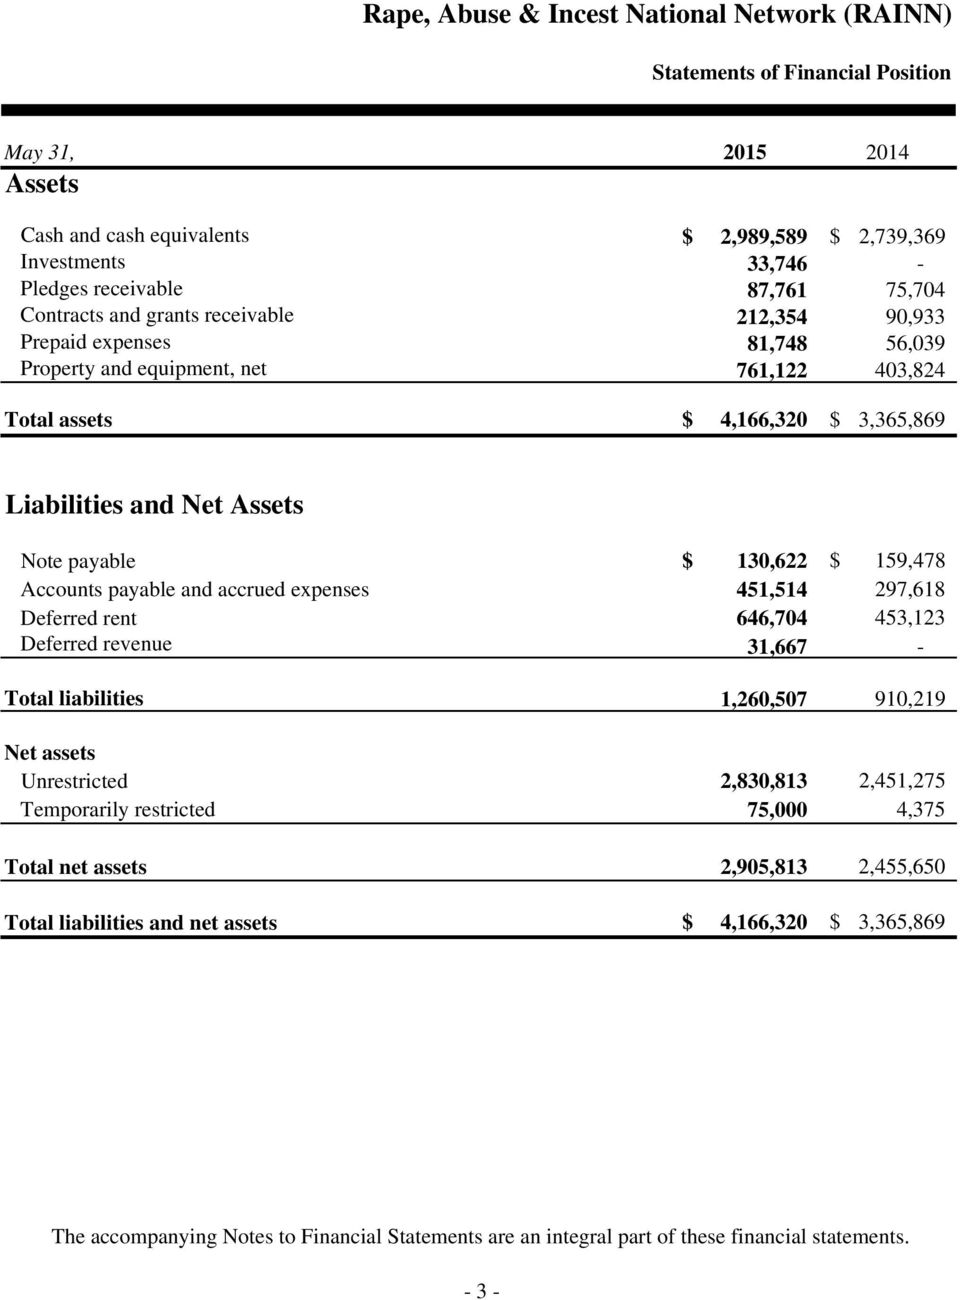 payable and accrued expenses 451,514 297,618 Deferred rent 646,704 453,123 Deferred revenue 31,667 - Total liabilities 1,260,507 910,219 Net assets Unrestricted 2,830,813 2,451,275 Temporarily